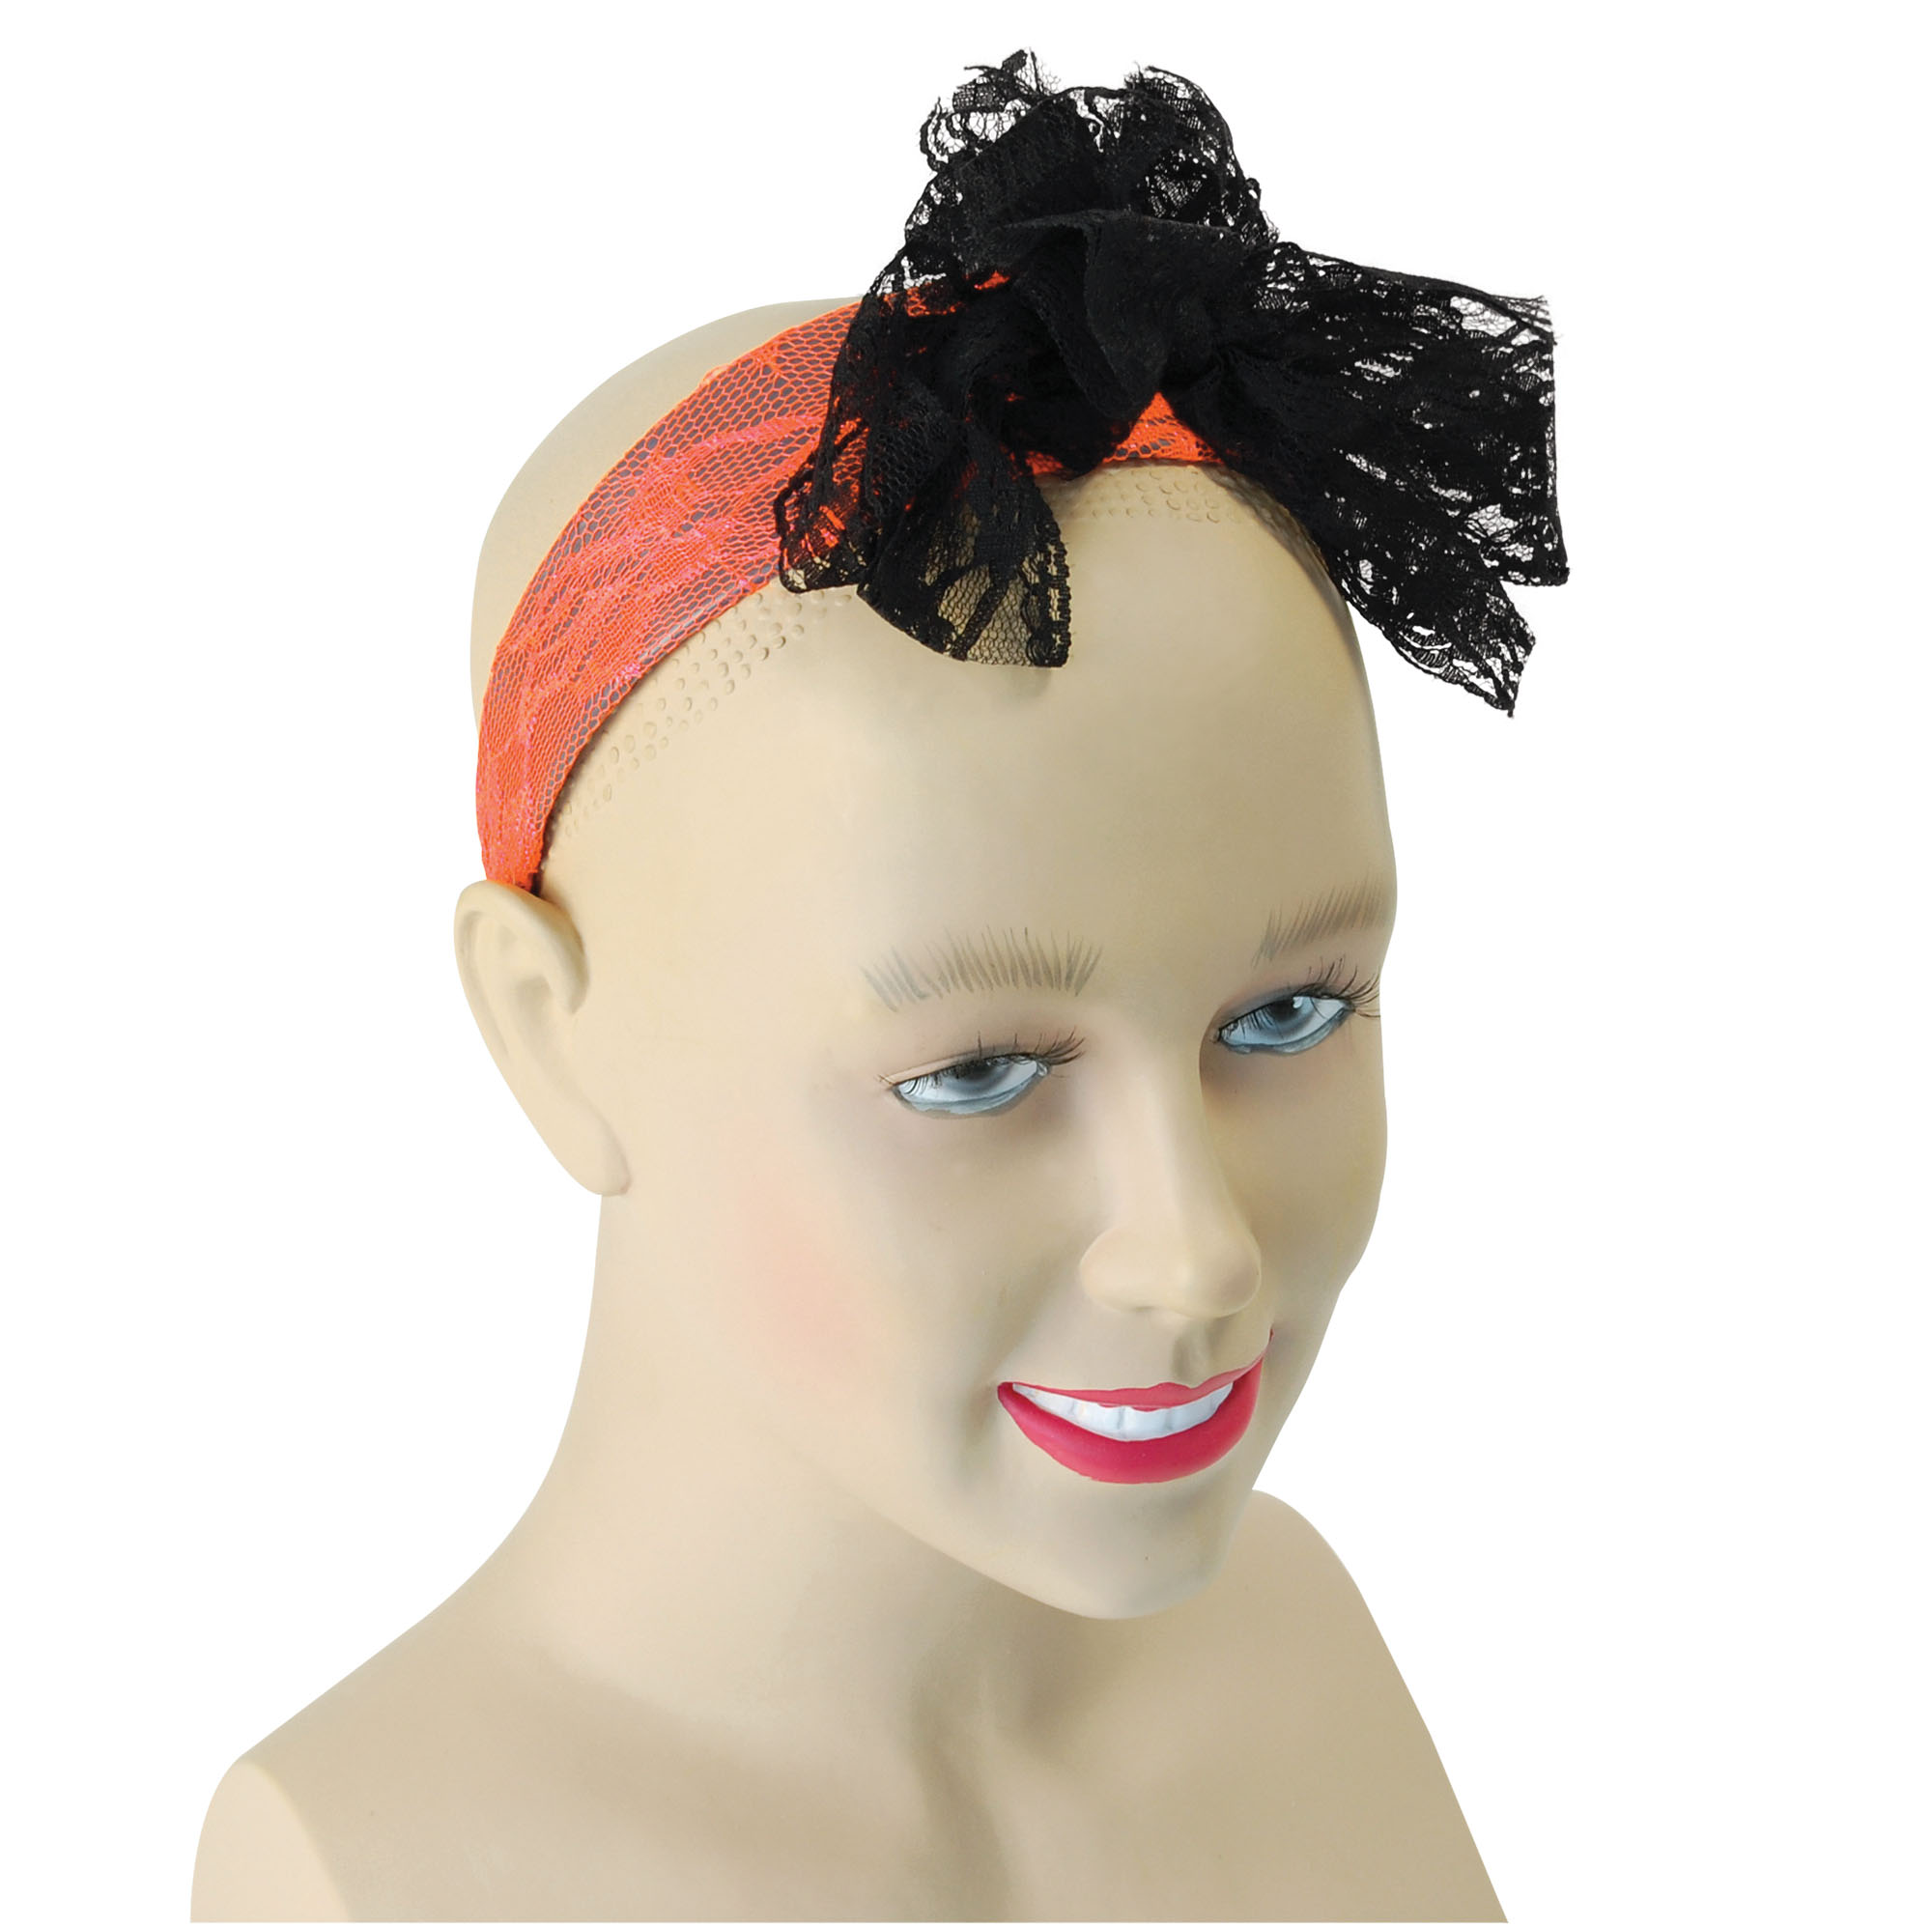 Neon Orange Lace Headband with Black Bow